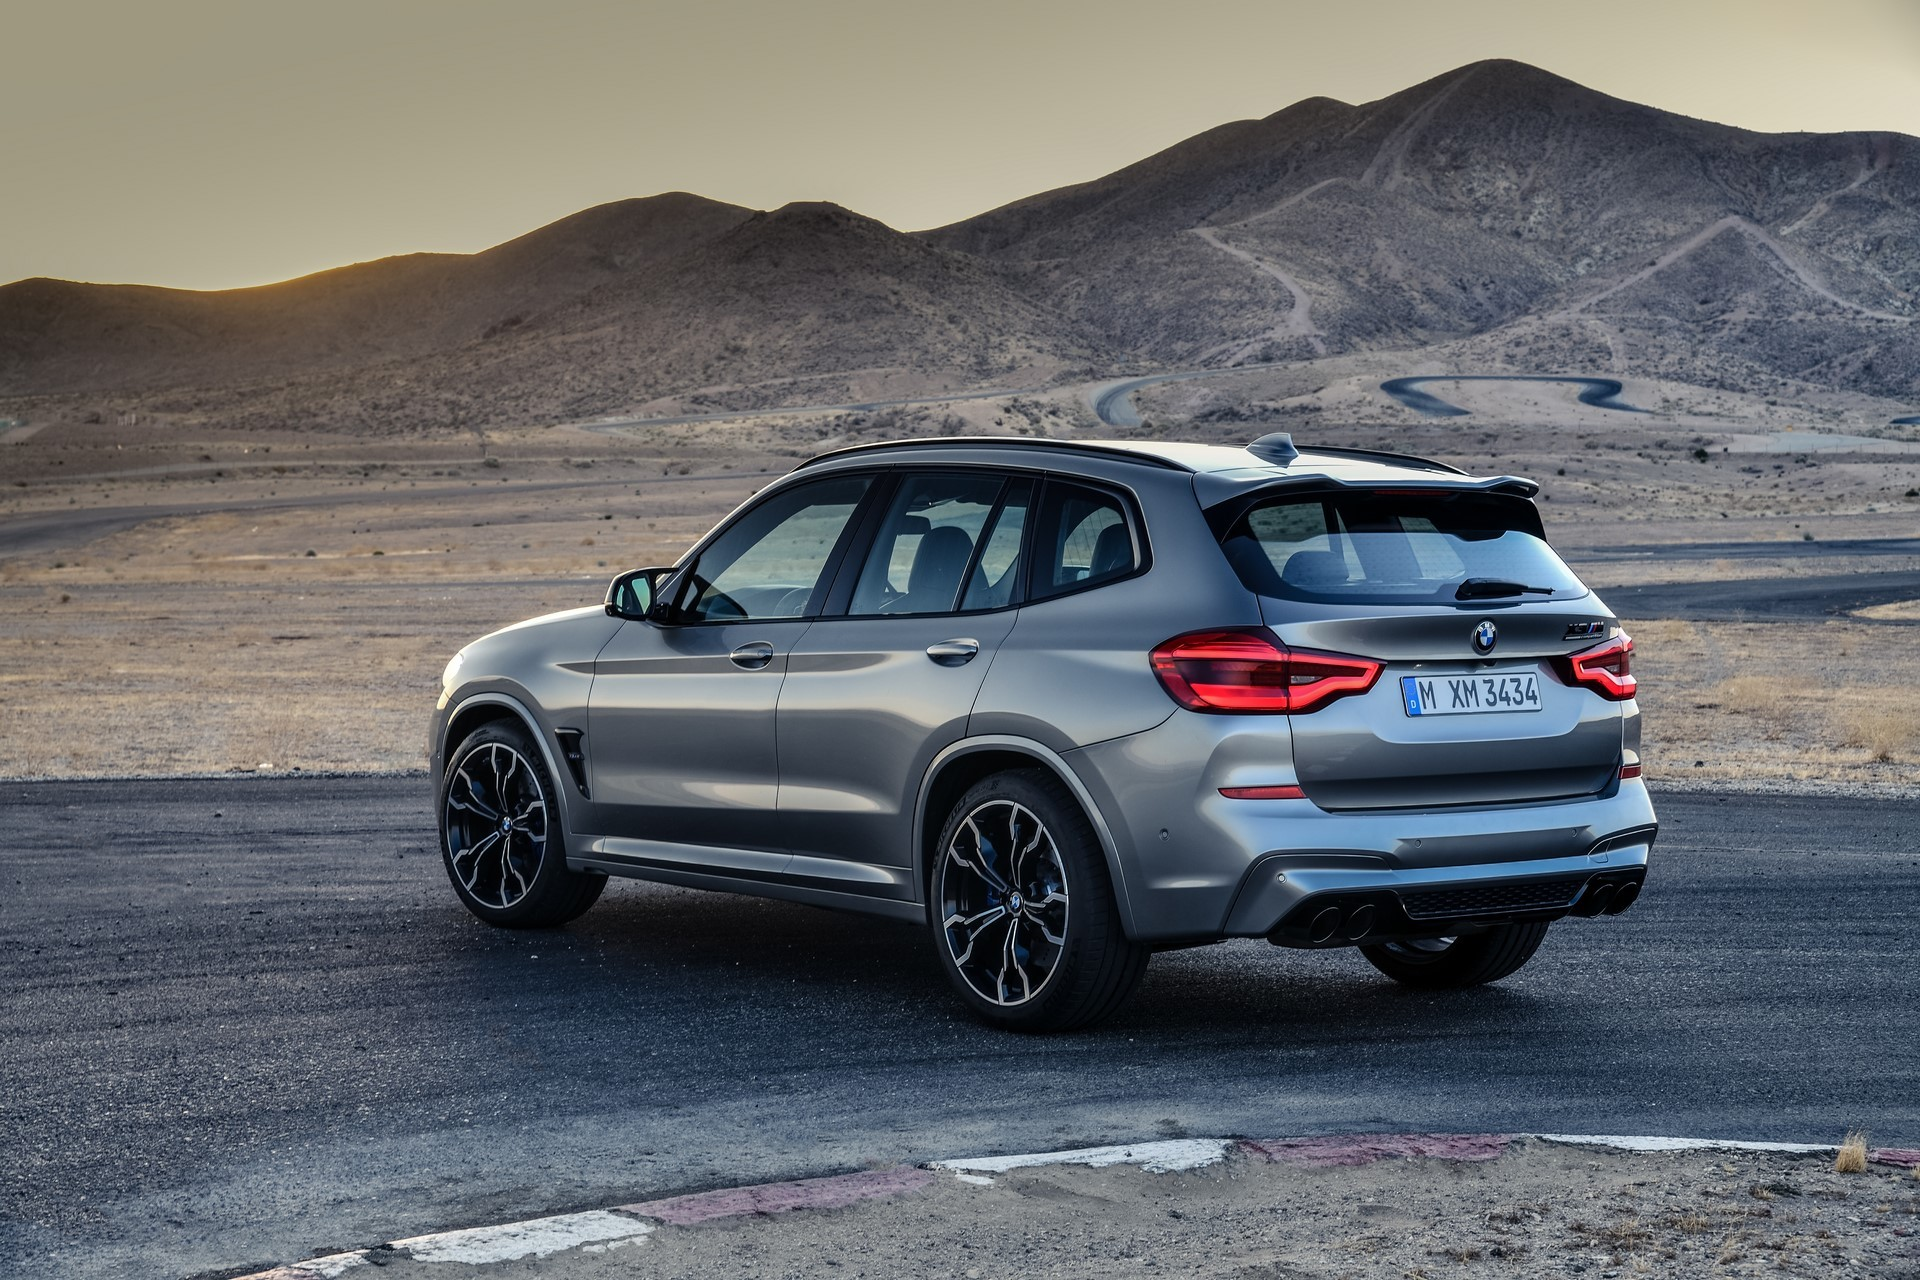 BMW X3 M and X4 M 2019 (9)